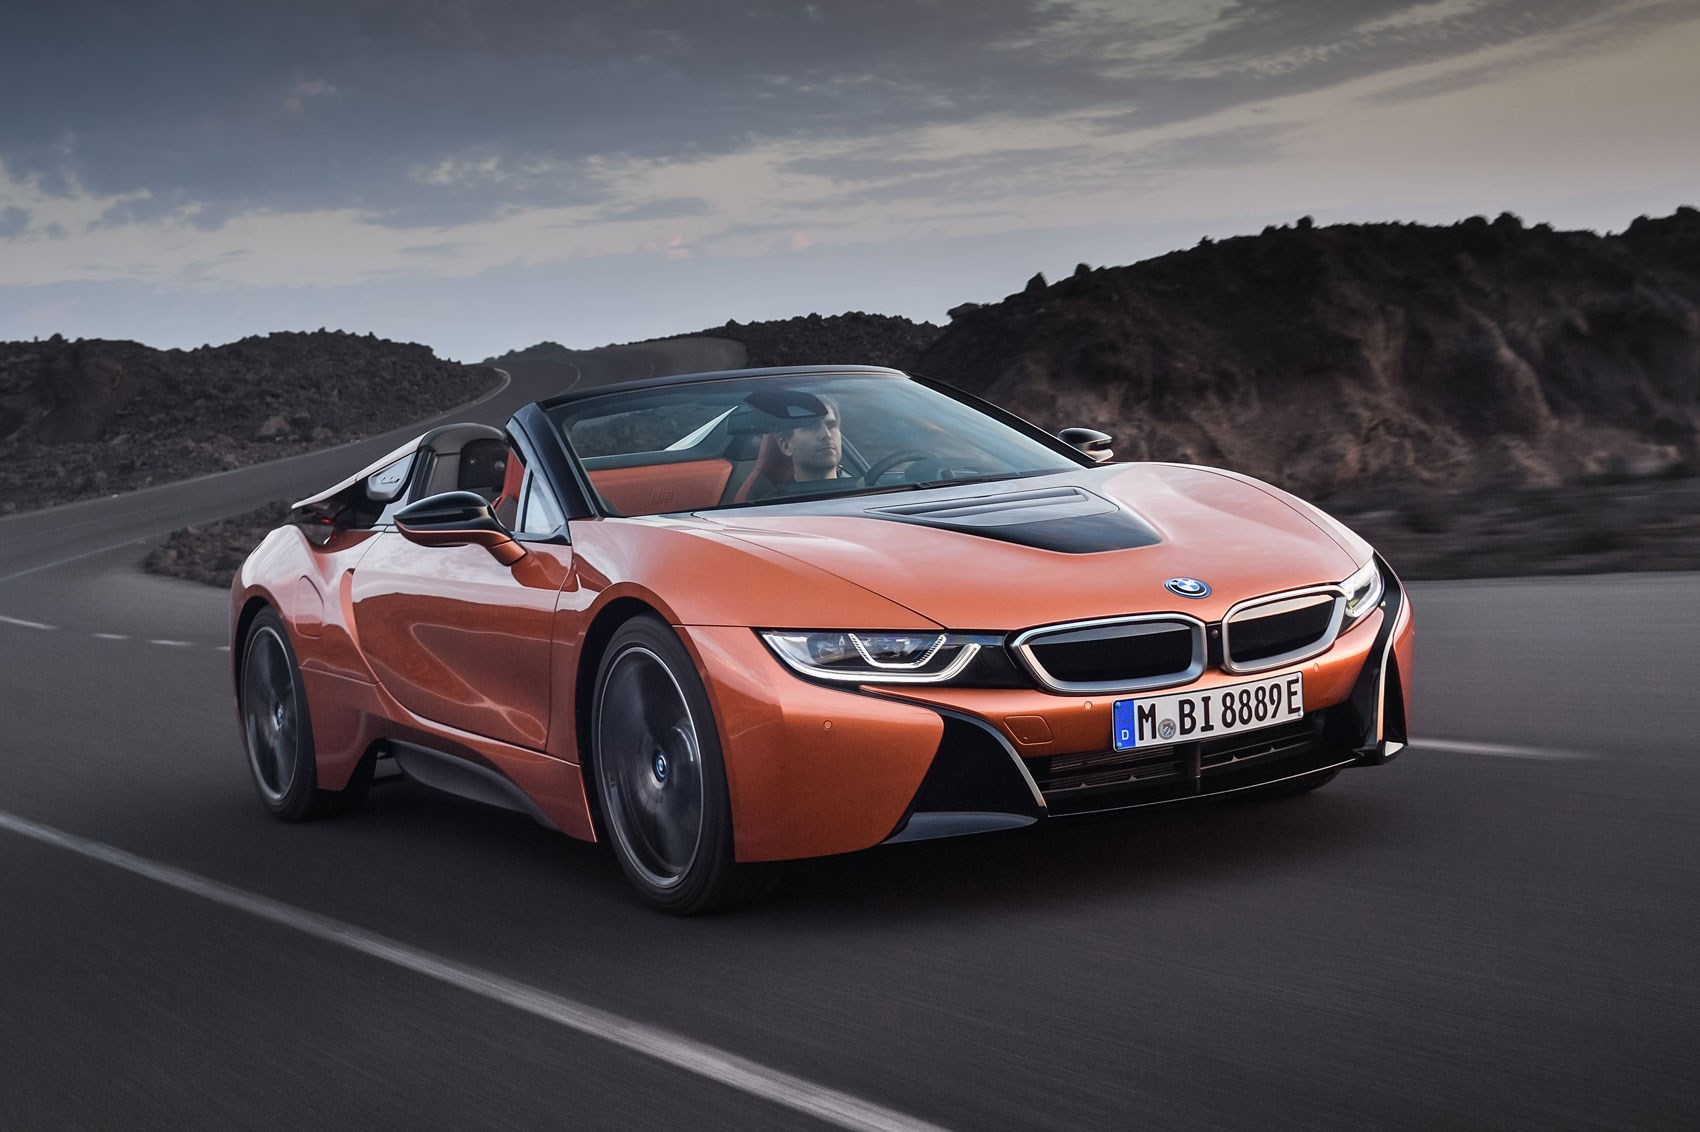 Soft Top Jeep >> Soft-top super-hybrid: 2018 BMW i8 Roadster revealed by CAR Magazine